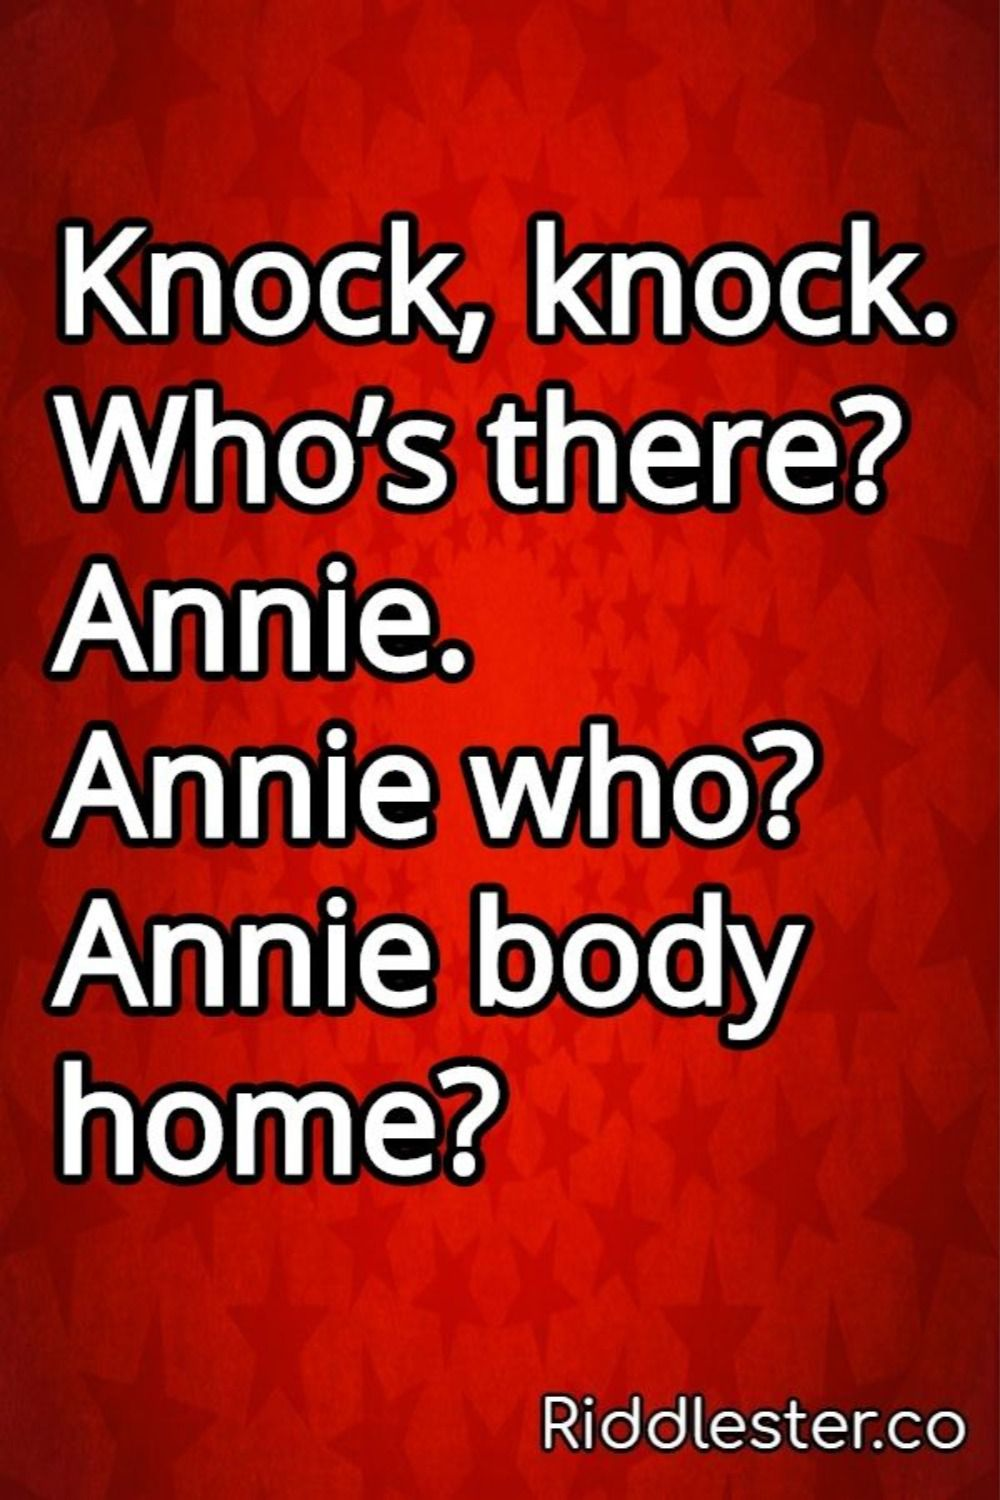 Foods Knock Knock Jokes For Kids And Adults Funny Knock Jokes For Kids Cute Funny Knock Knock Jokes Short Jokes Funny Funny Jokes For Kids